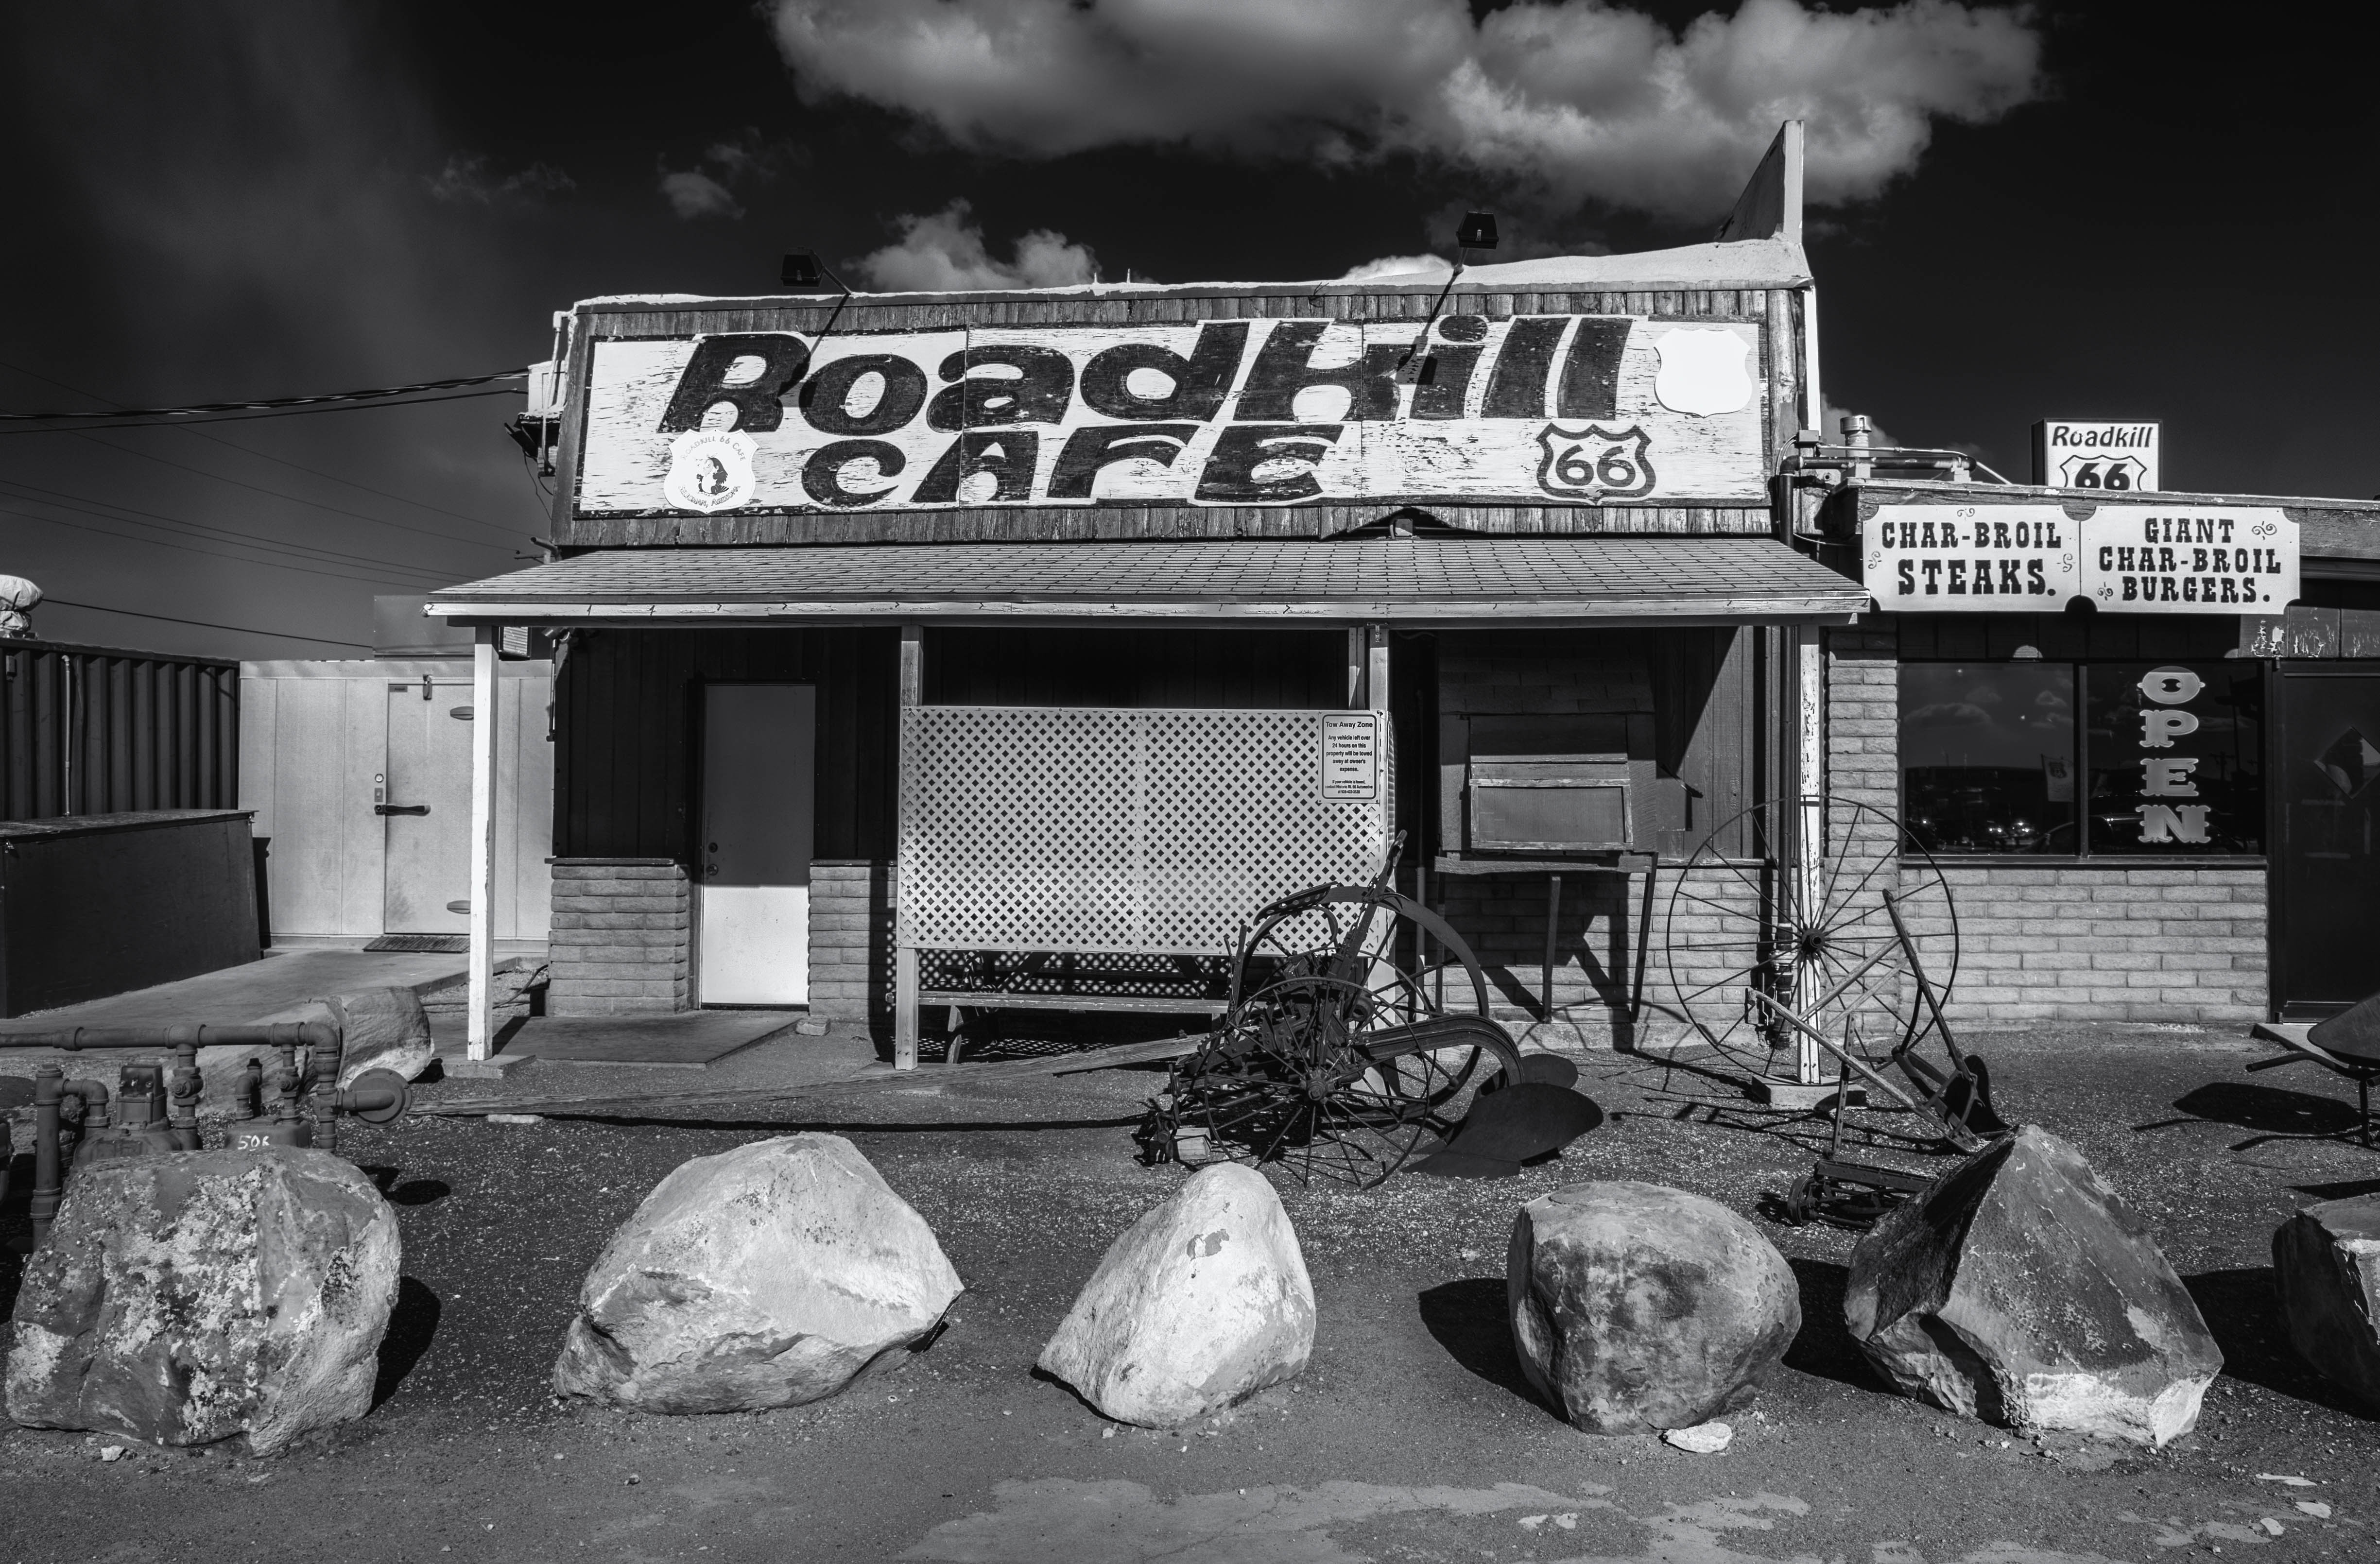 route 66 archives - photographycybershutterbug